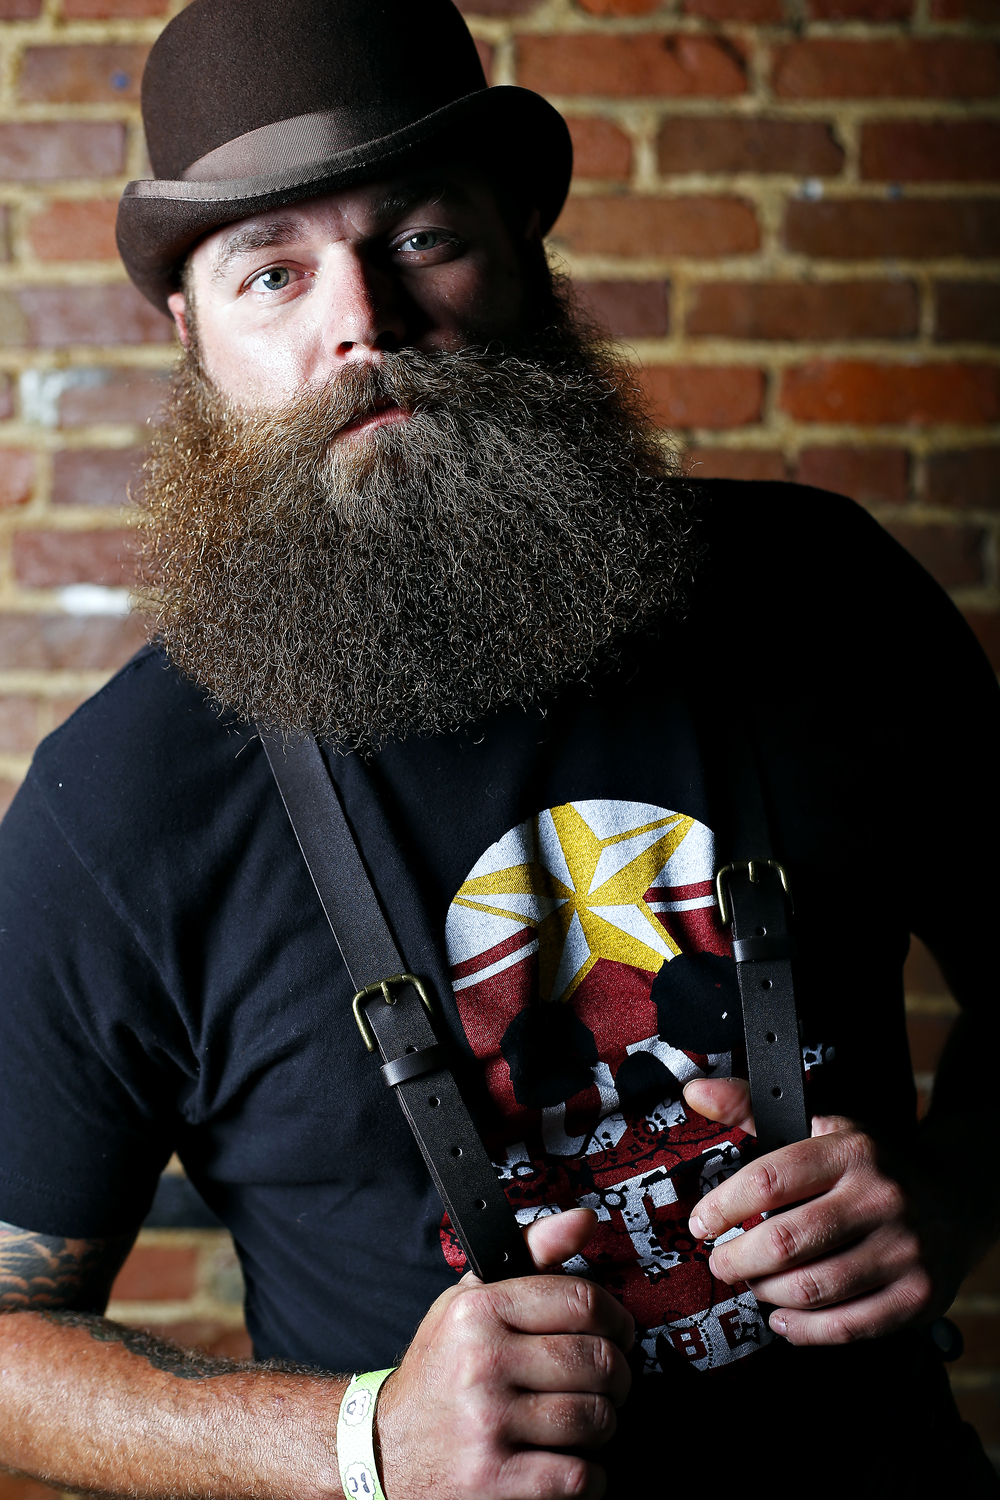 Quinton Catfish Crocker of Austin, Texas. Competing in Full Beard, Styled Moustache category.